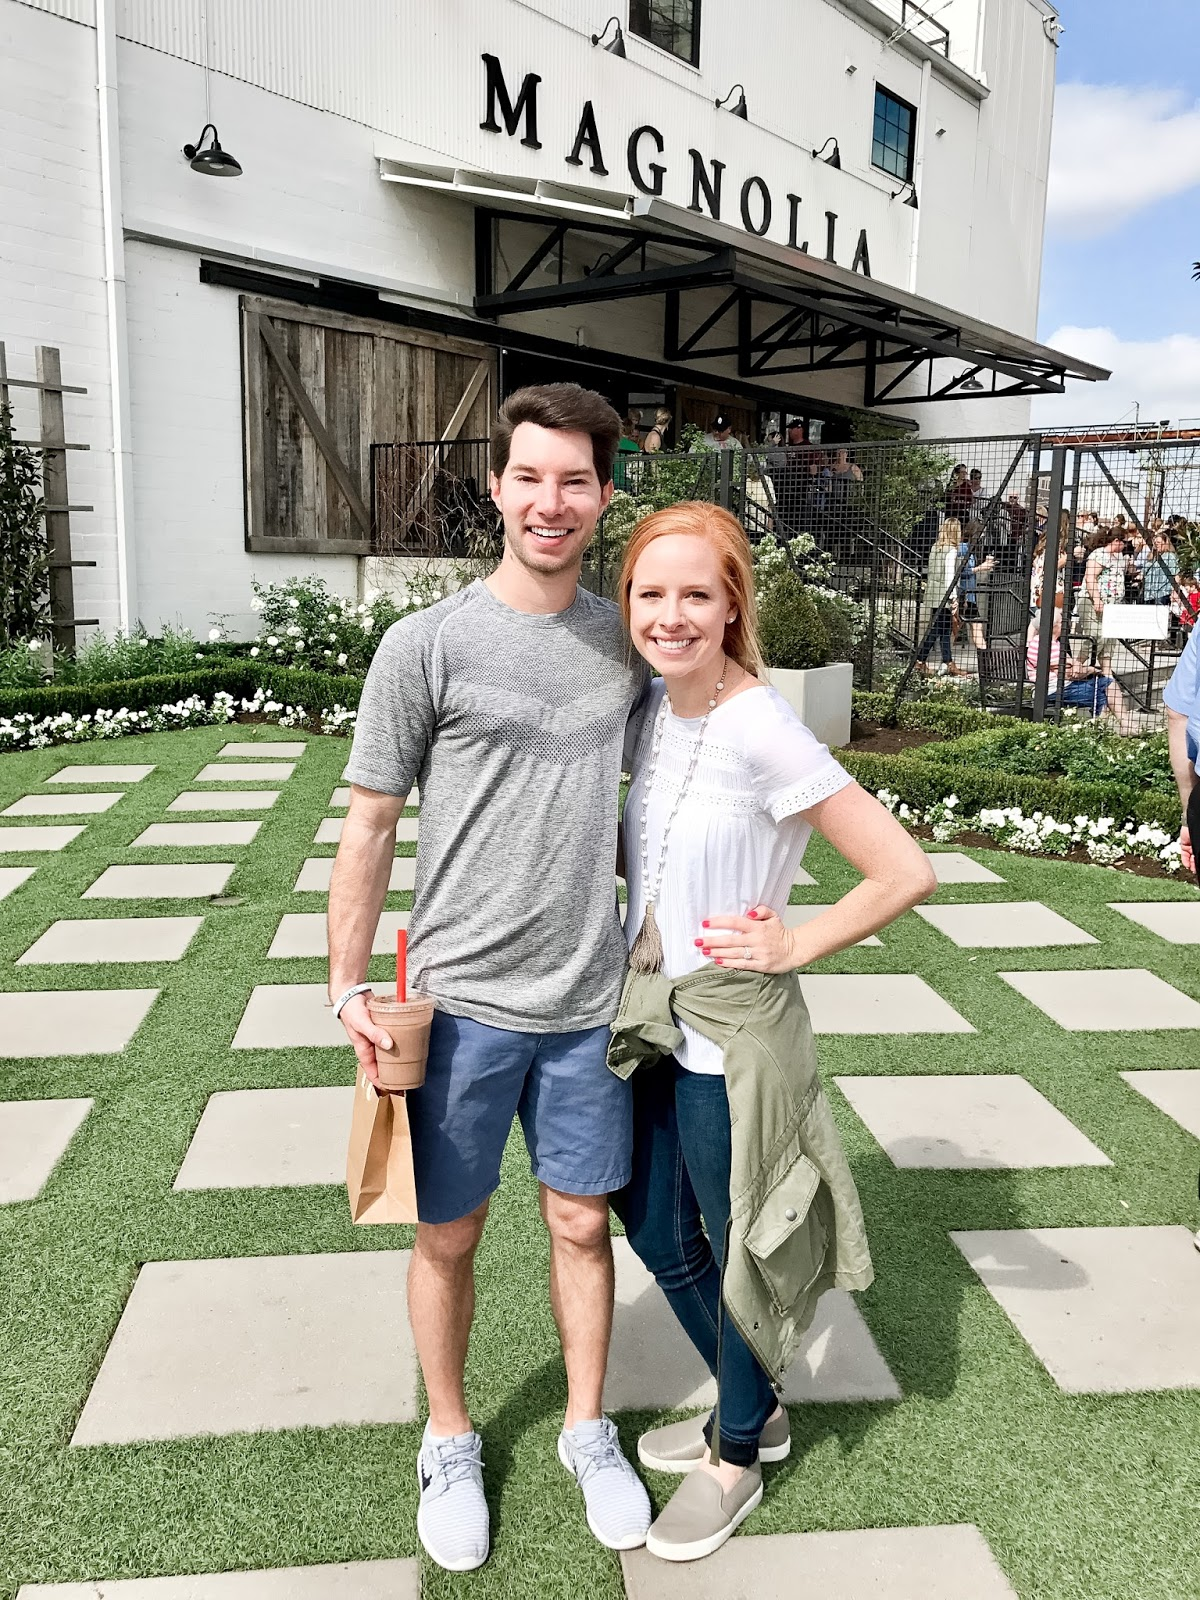 Amy and Cory at Magnolia Market